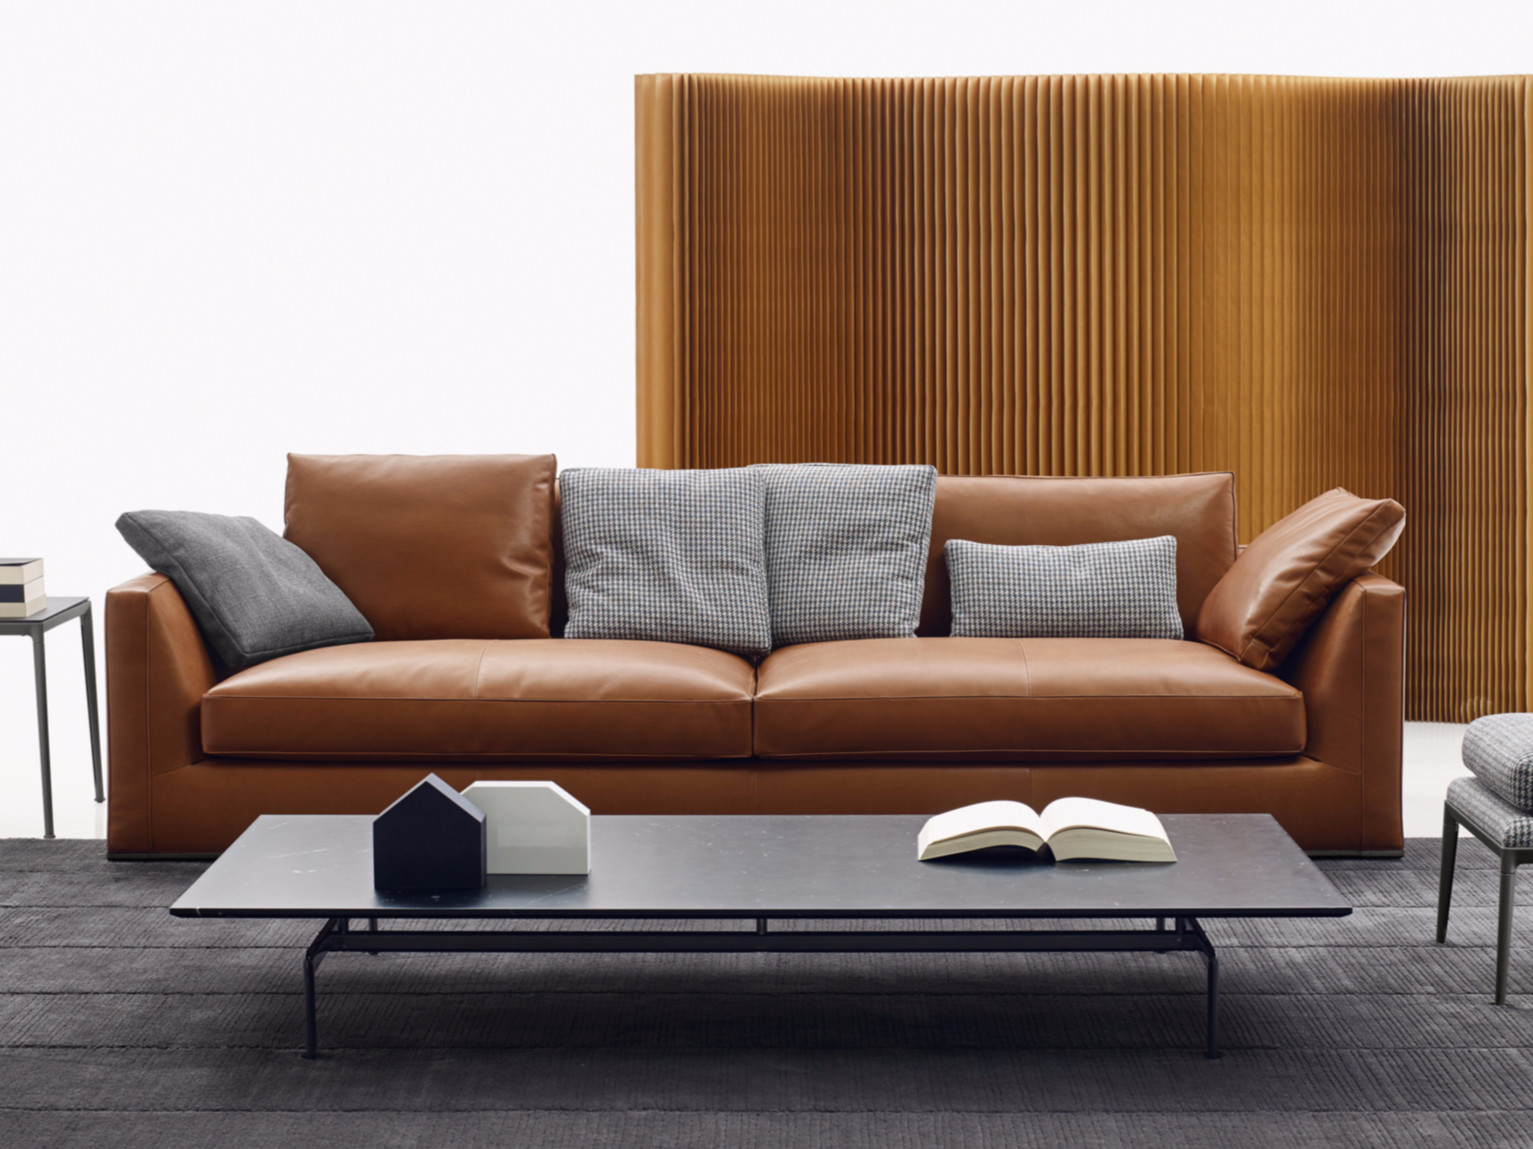 3 Seater Leather Sofa Richard Collection By B B Italia Design Antonio Citterio